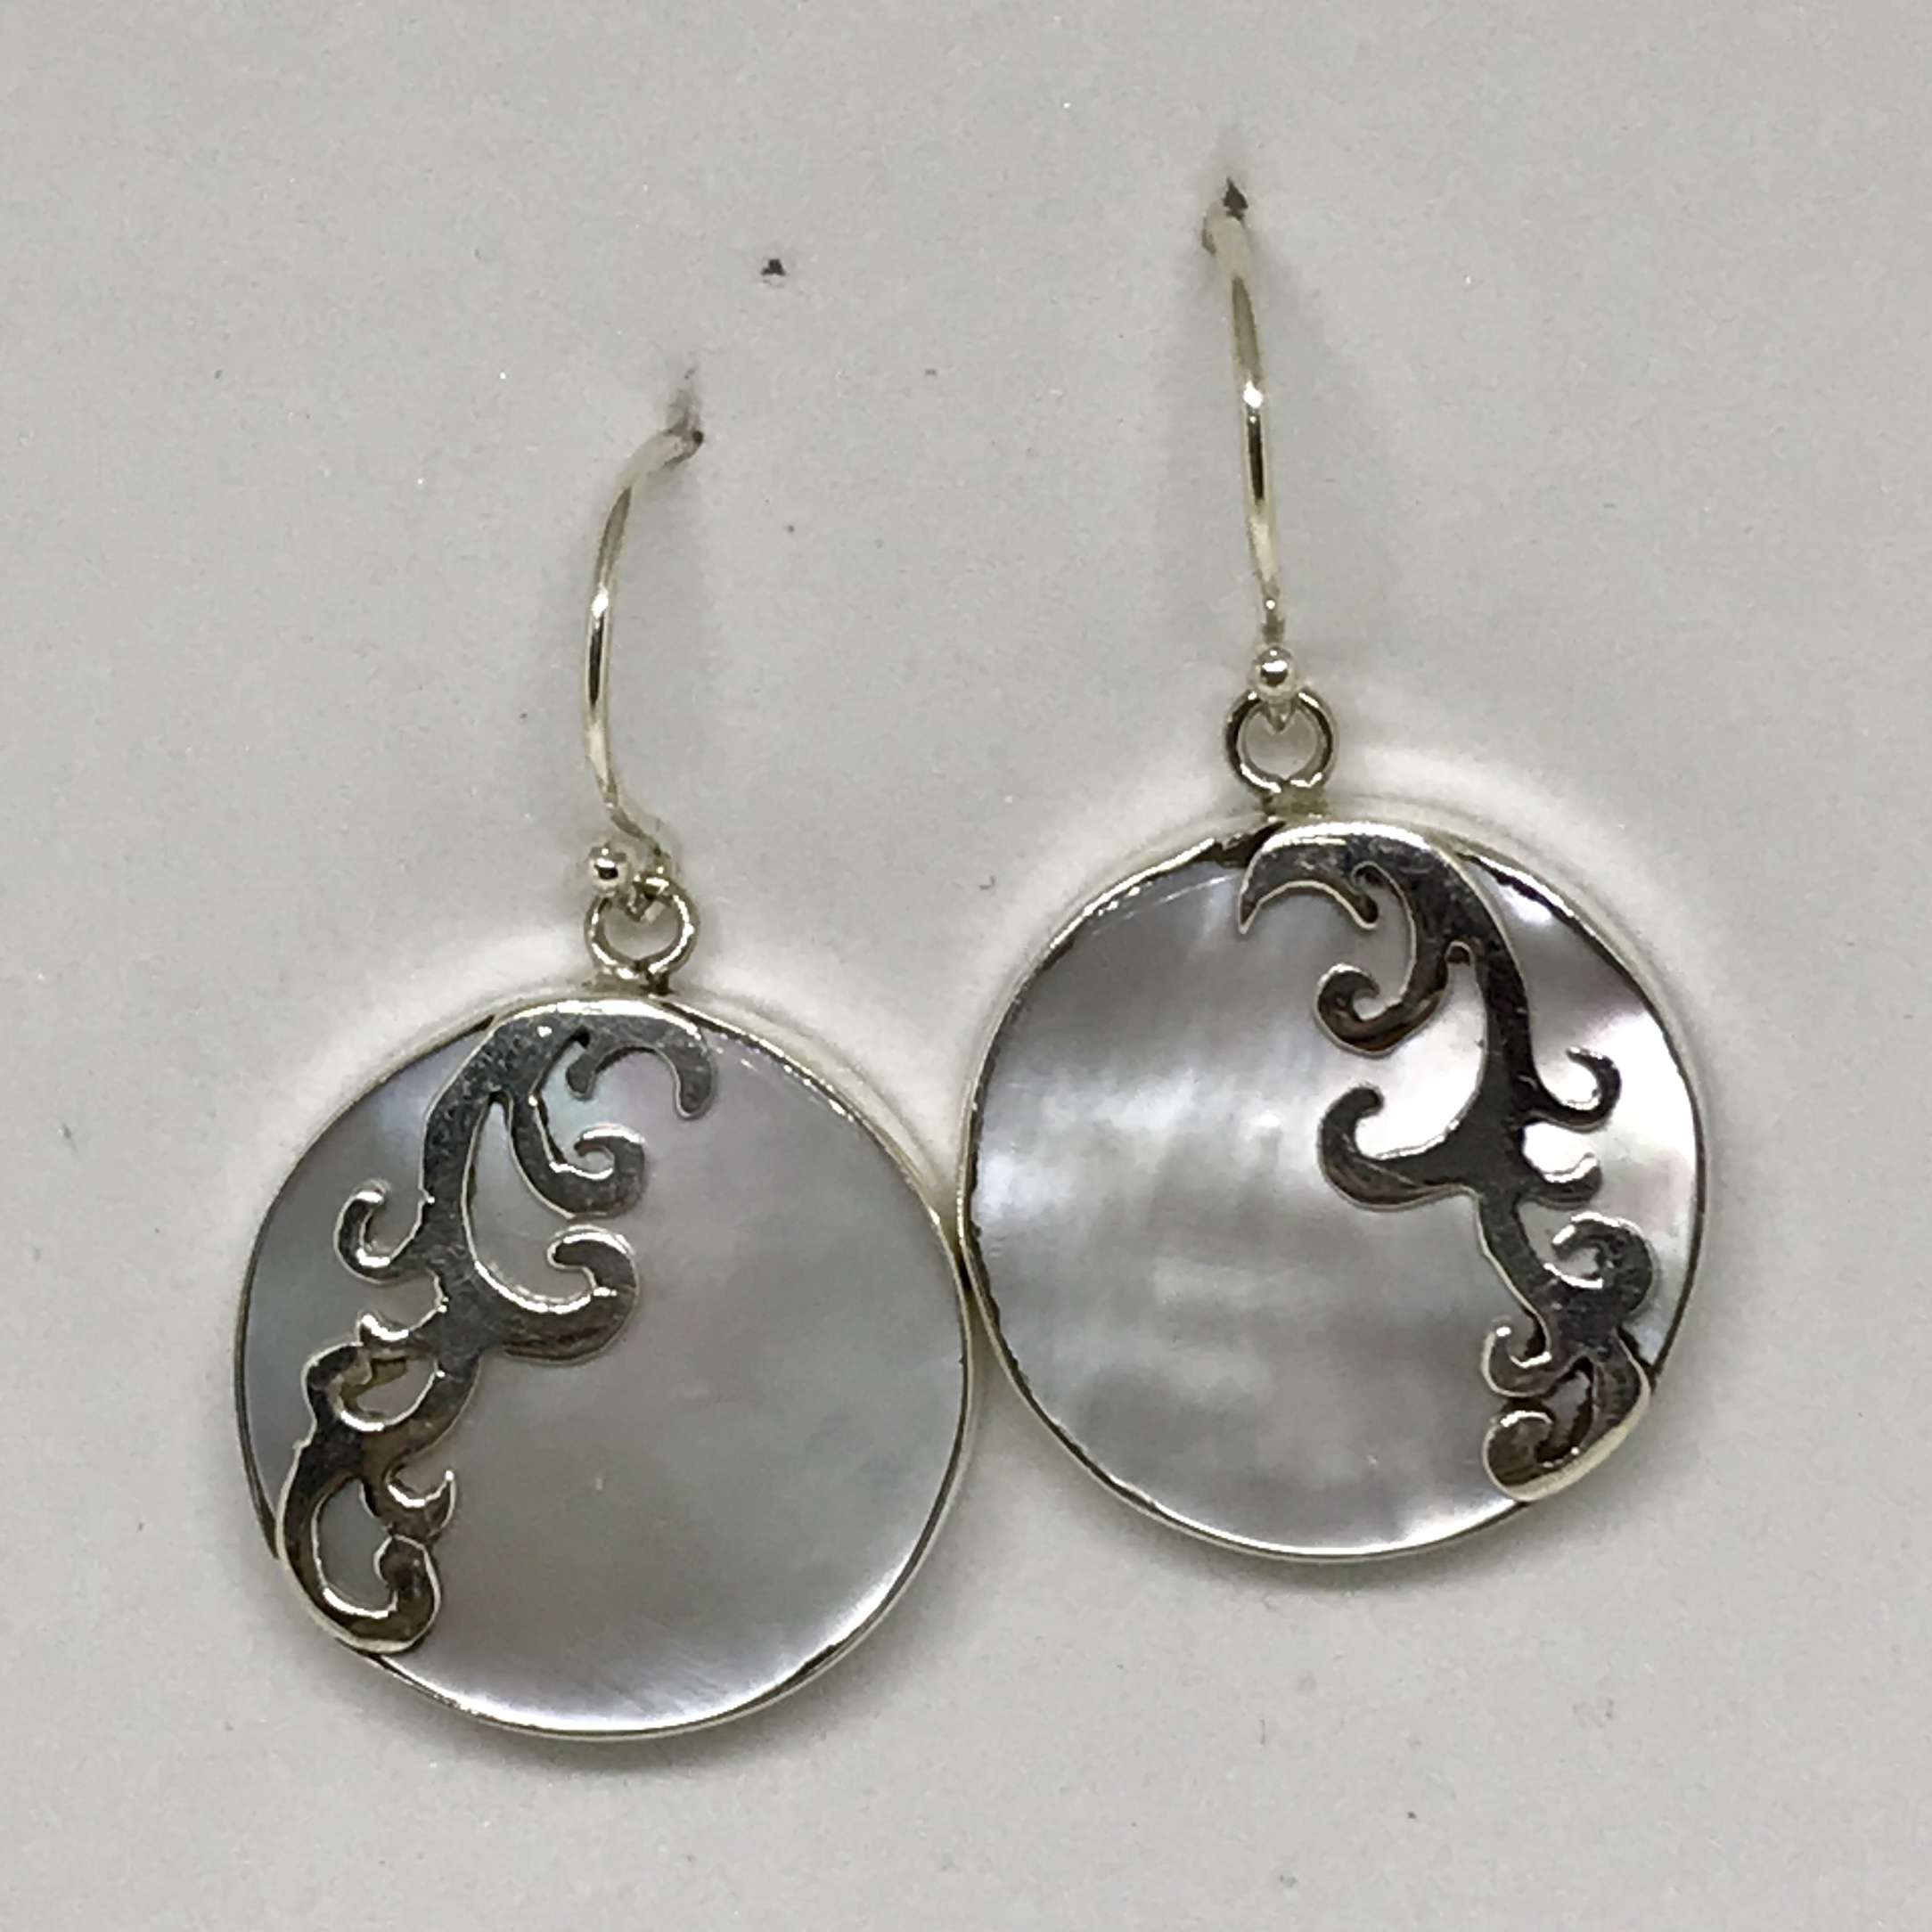 (HANDMADE 925 BALI SILVER EARRINGS WITH ROUND MOTHER OF PEARL)